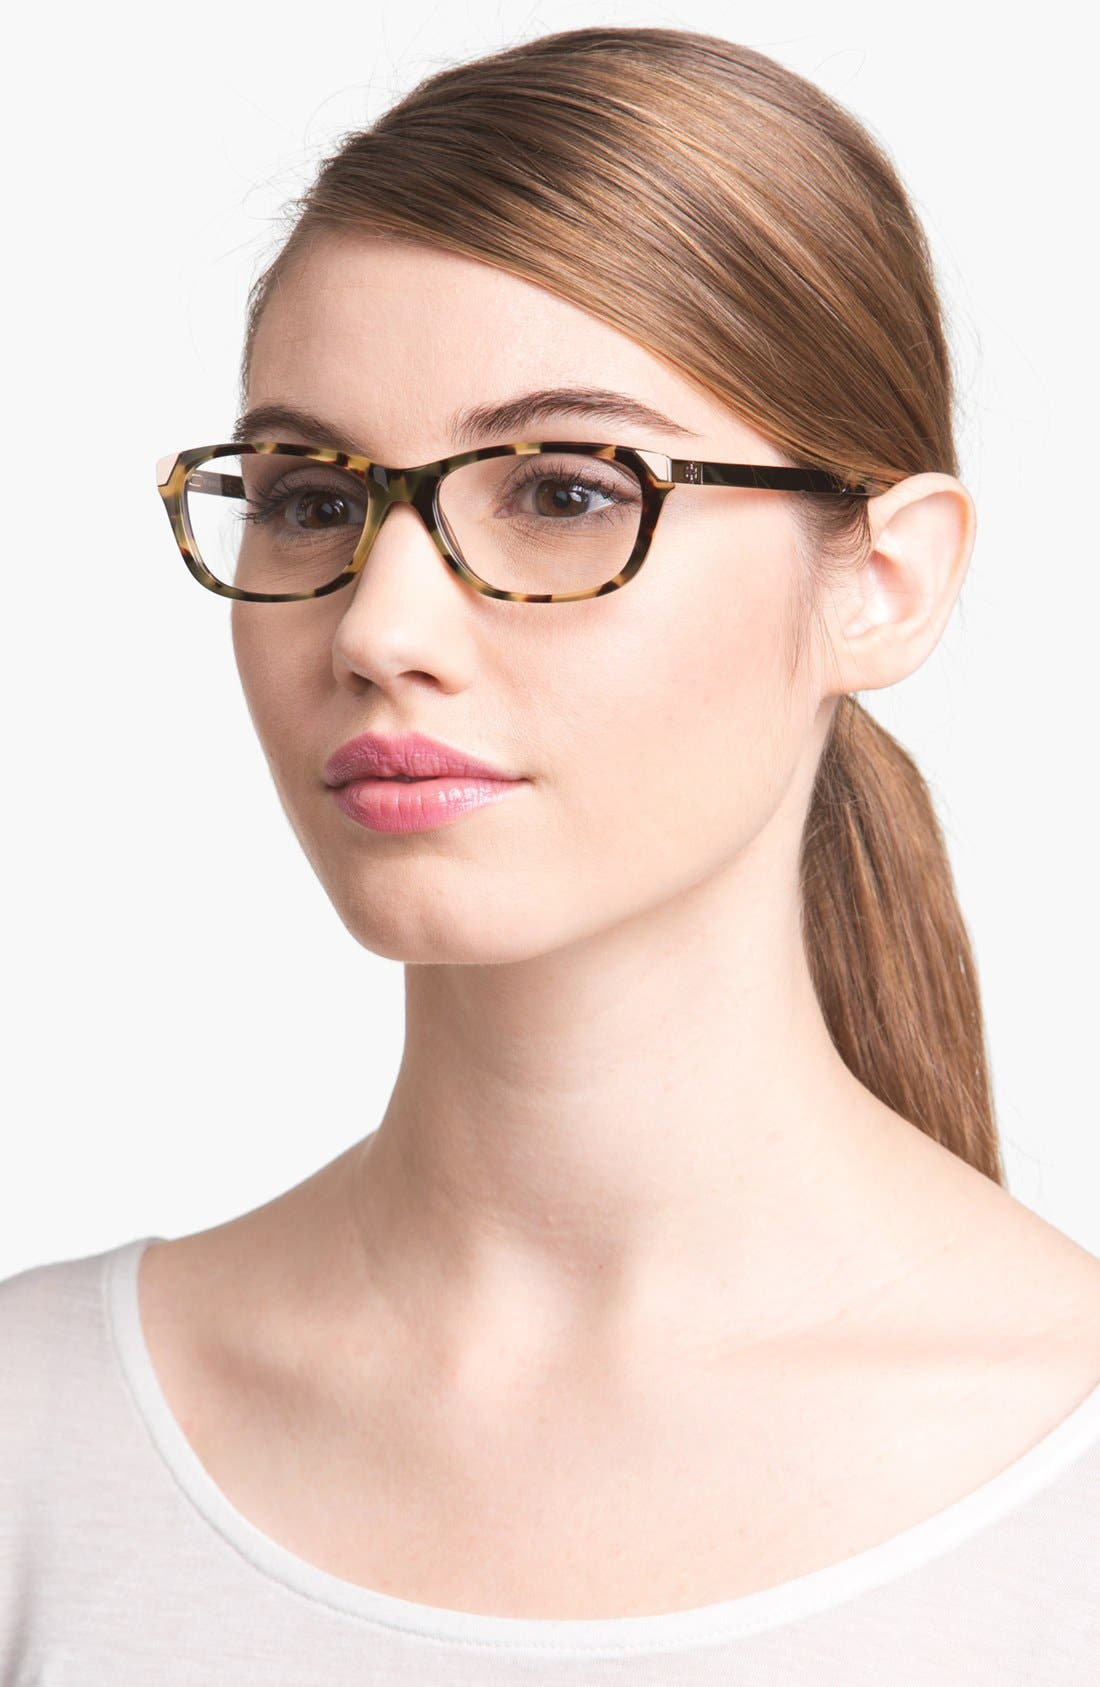 Alternate Image 1 Selected - Tory Burch 51mm Optical Glasses (Online Exclusive)